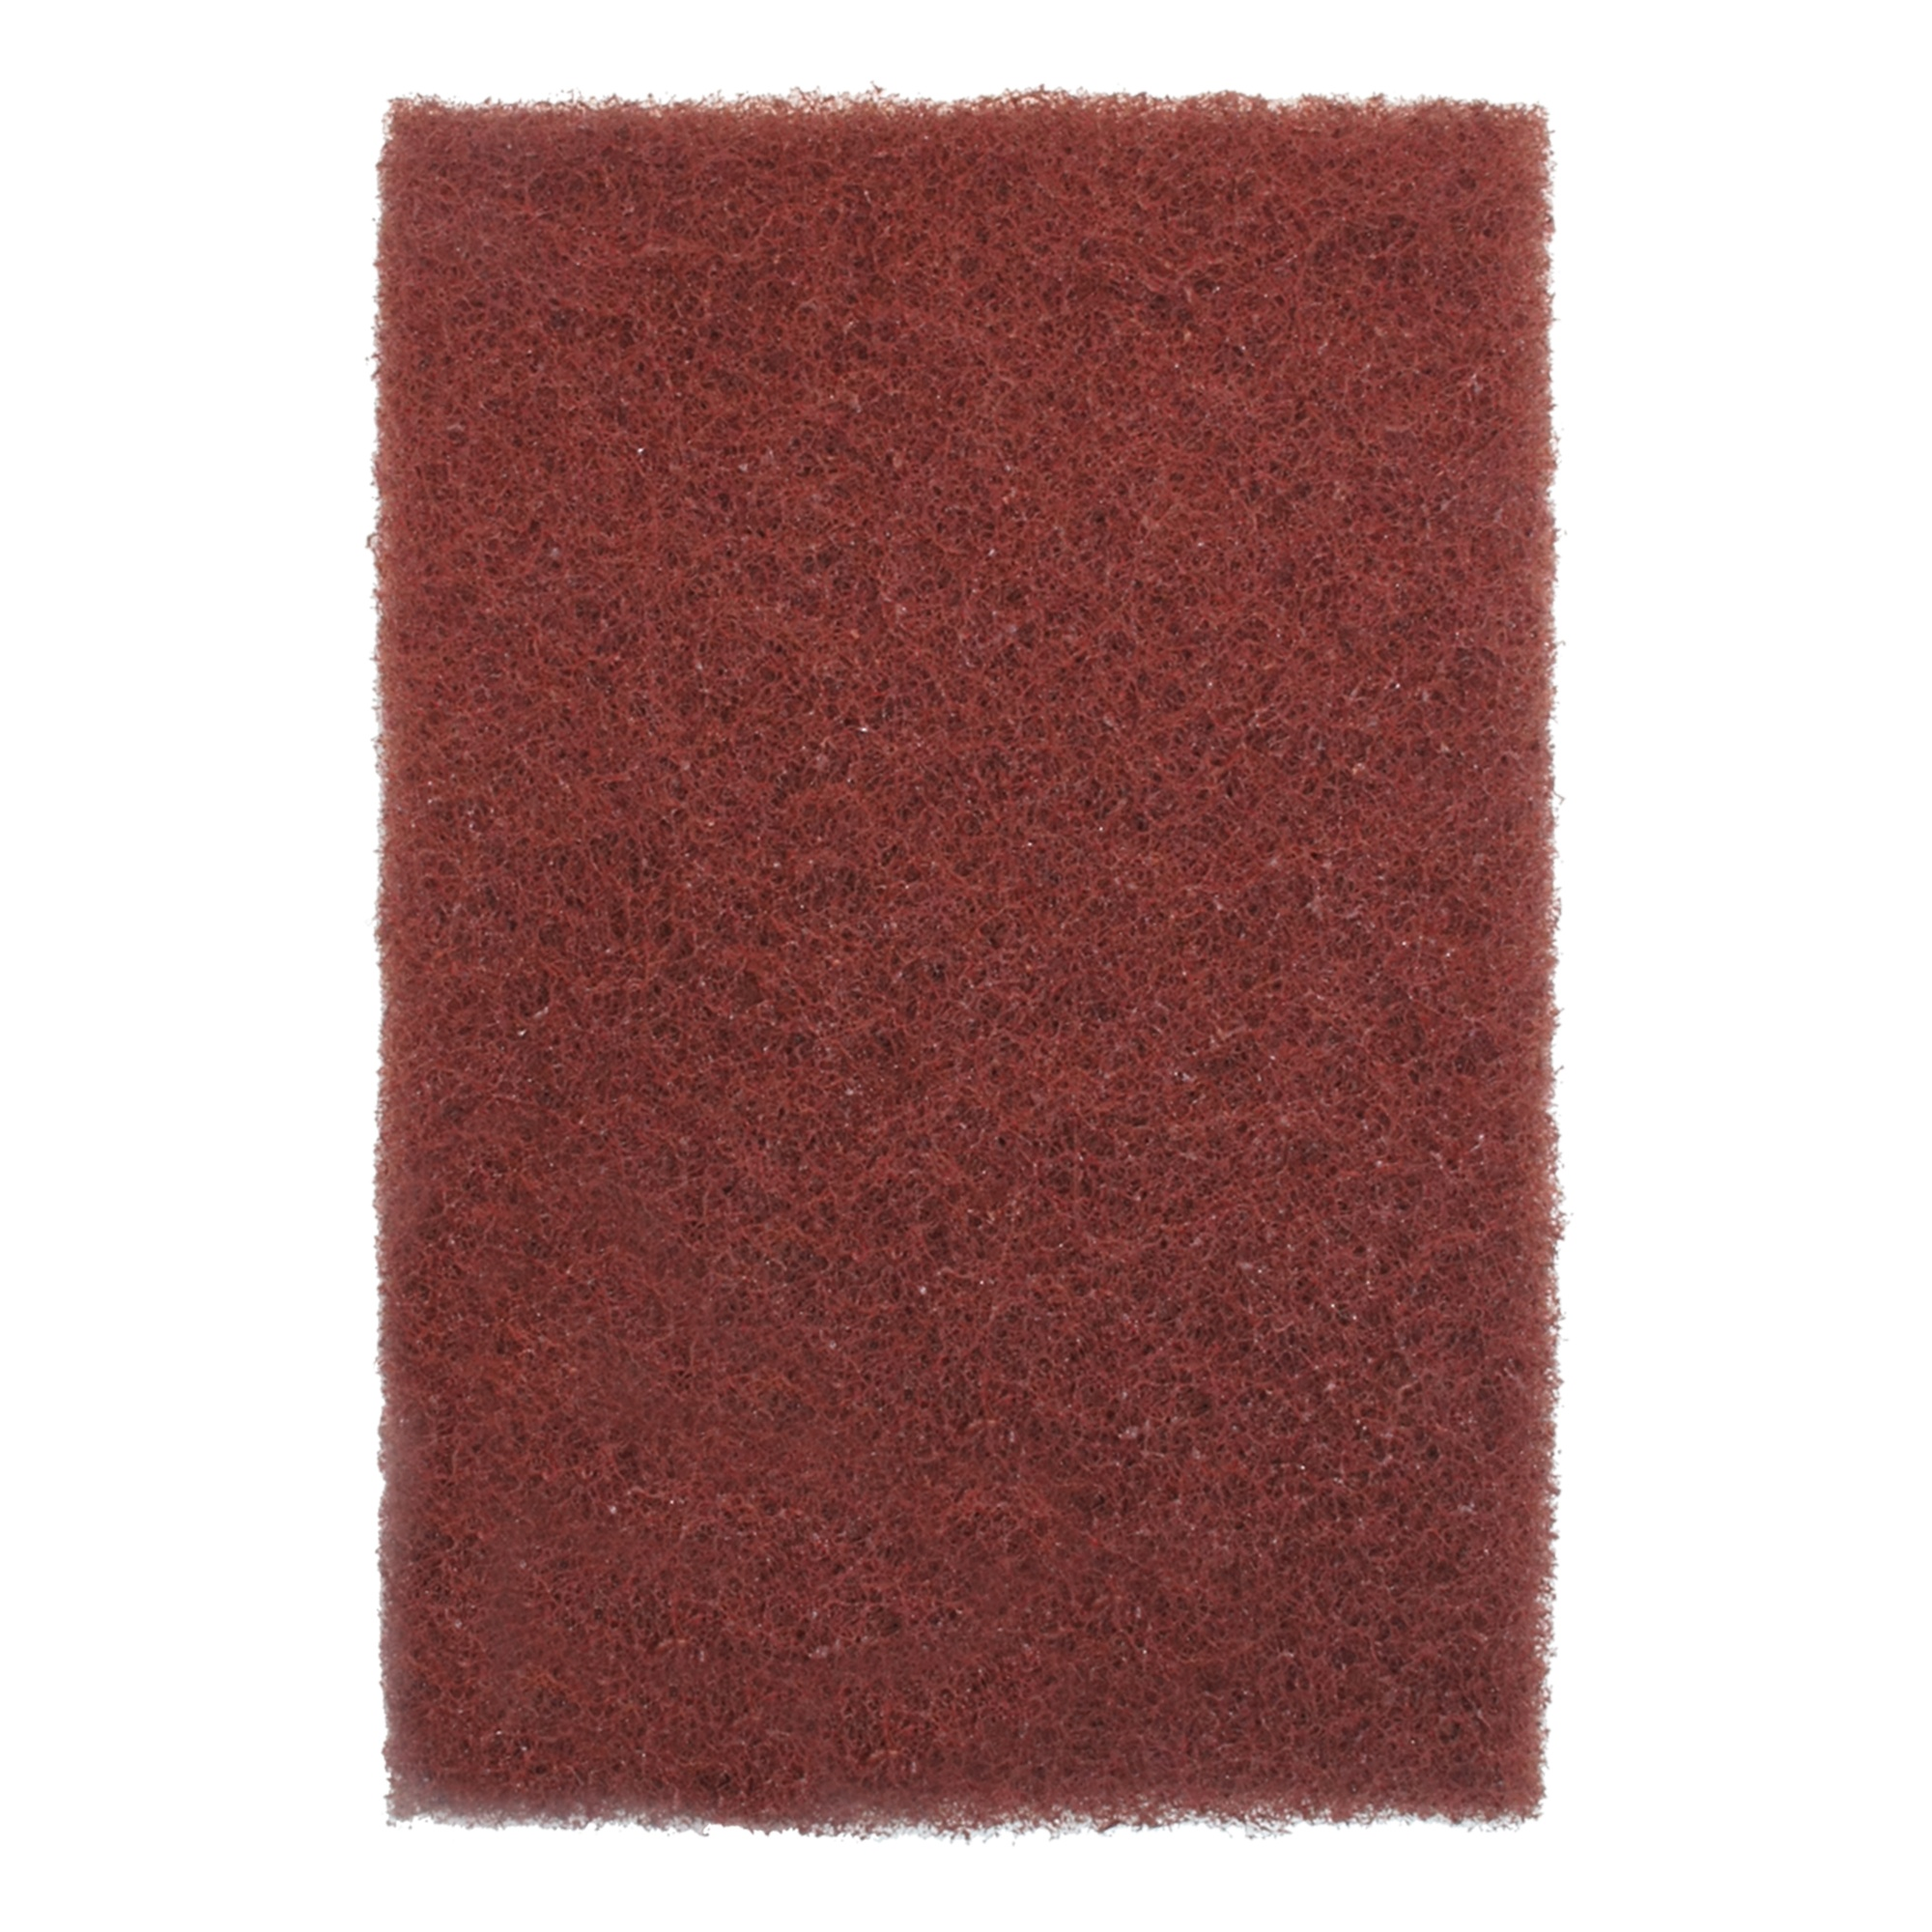 Stain and Rust Remover Pad Image